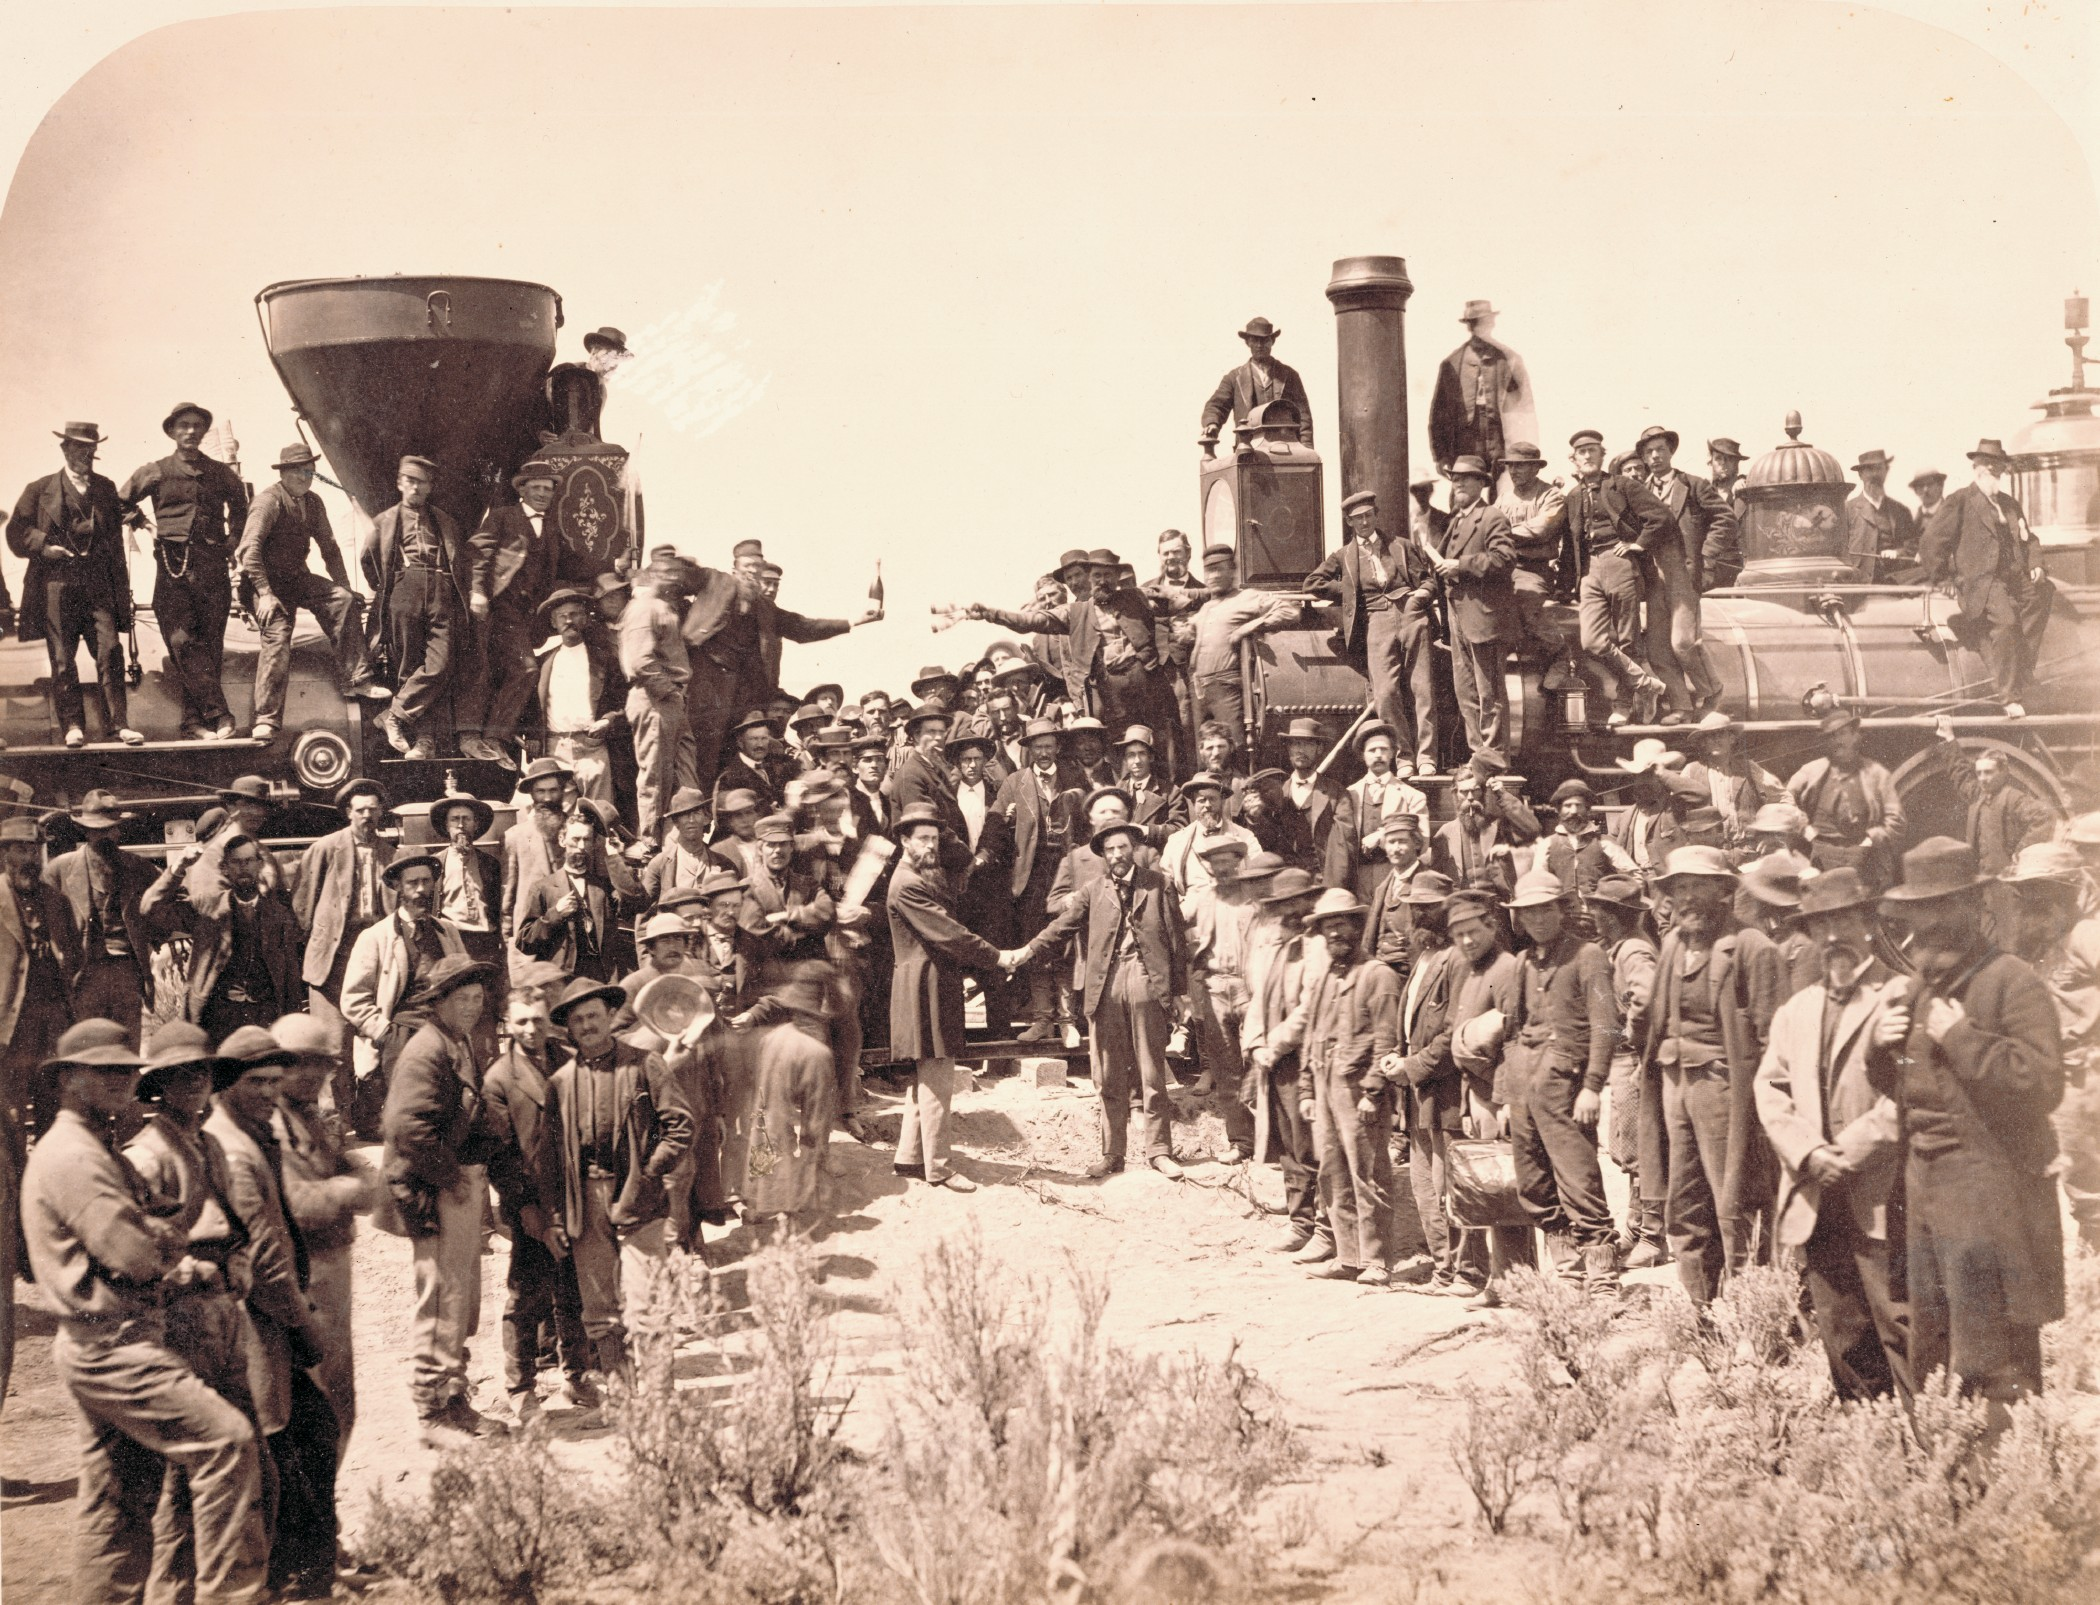 Andrew J. Russell (American, 1830–1902), East and West Shaking Hands at Laying Last Rail, 1869, albumen print,       Courtesy Union Pacific Railroad Museum. The ceremony spotlighted Union Pacific locomotive No. 119 meeting Central Pacific locomotive Jupiter. From left, shaking hands, are Samuel S. Montague, chief engineer of the Central Pacific Railroad, and General Grenville M. Dodge, chief engineer of the Union Pacific Railroad.